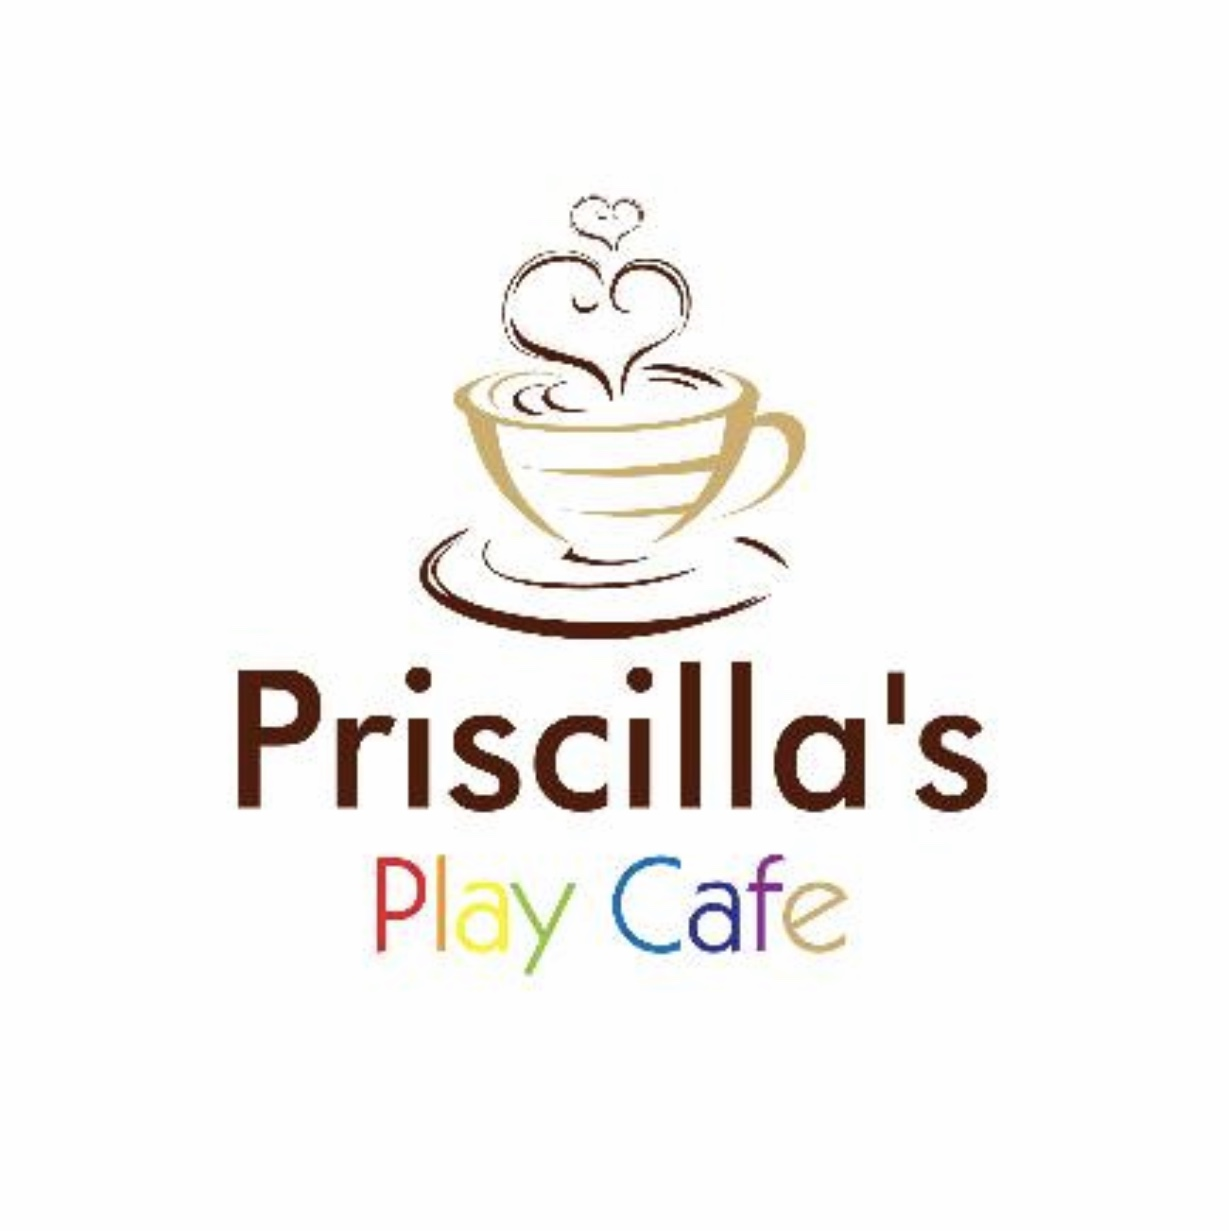 Priscilla's Play Cafe